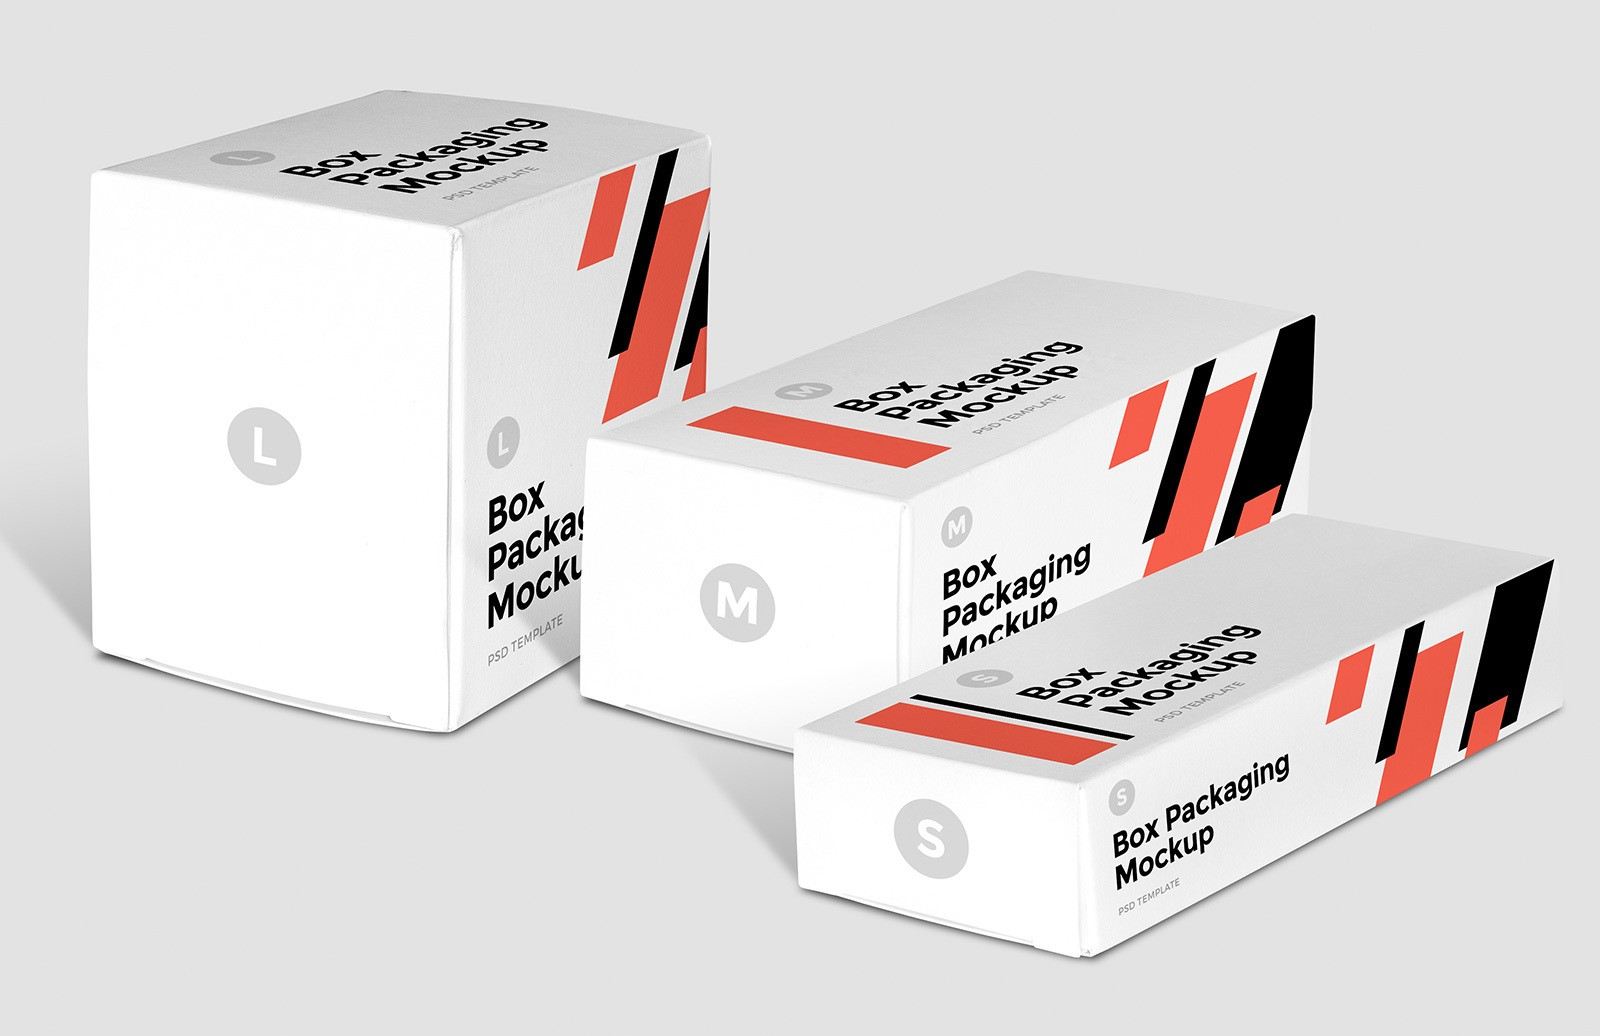 Box Packaging Mockup Preview 1A